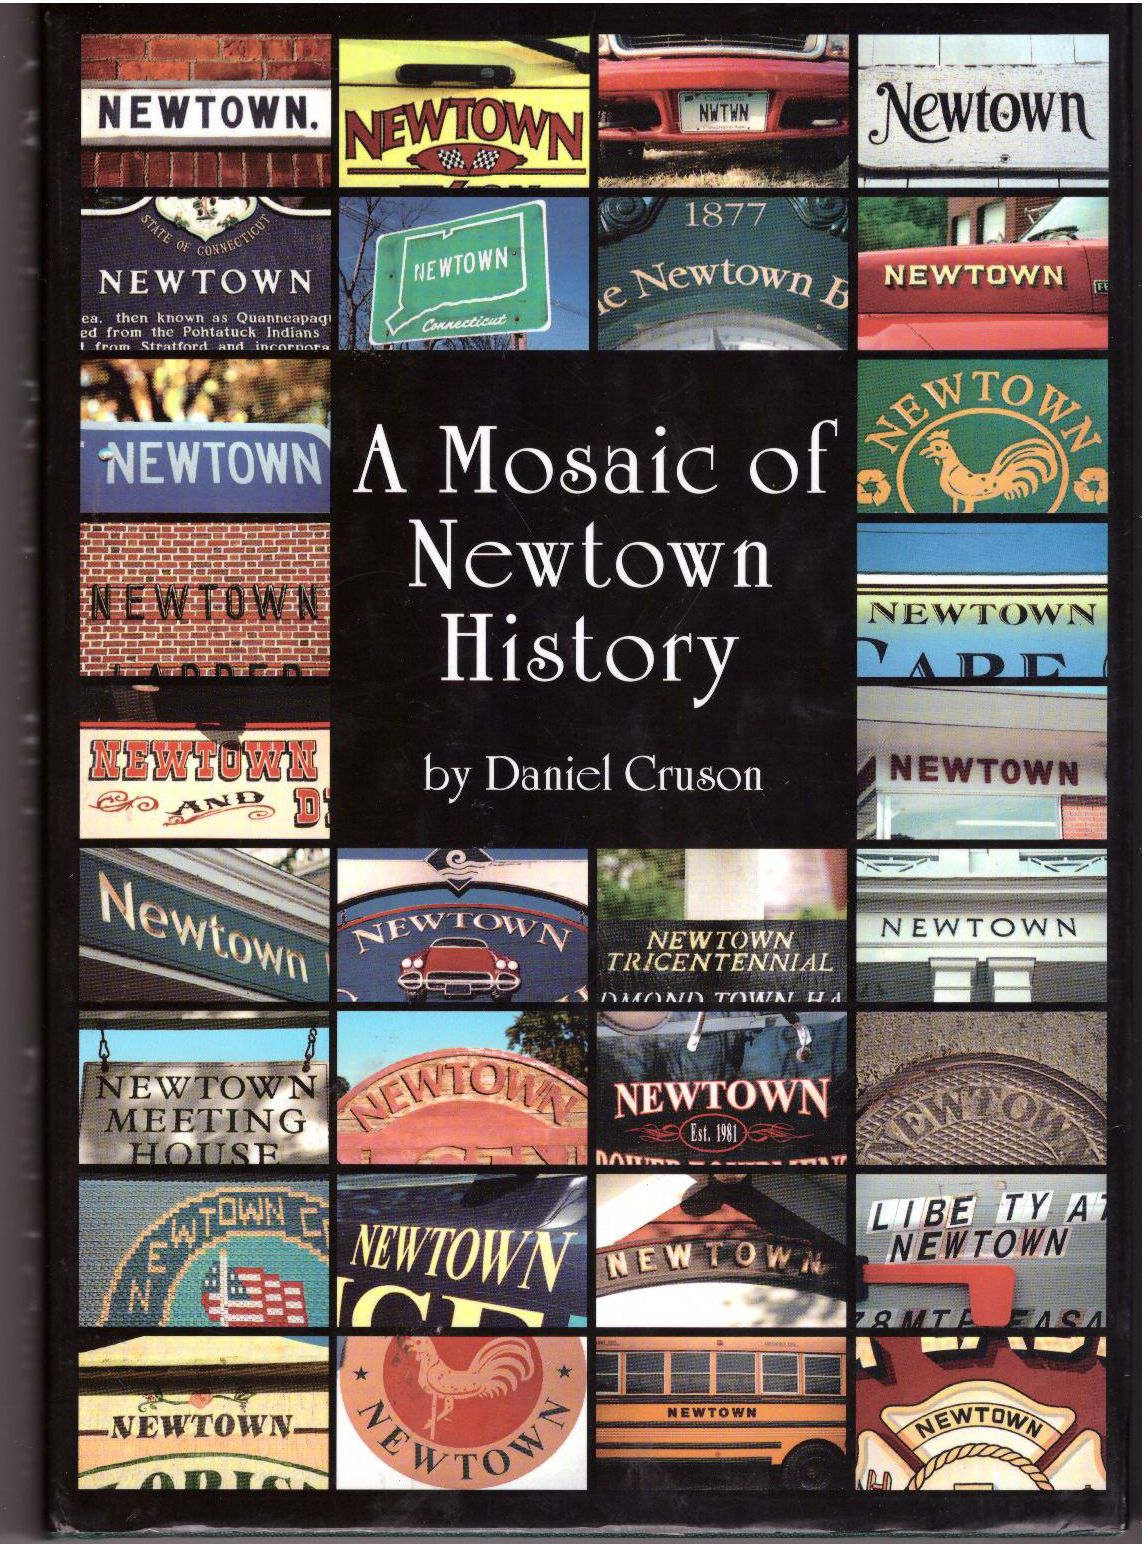 A Mosaic of Newtown History